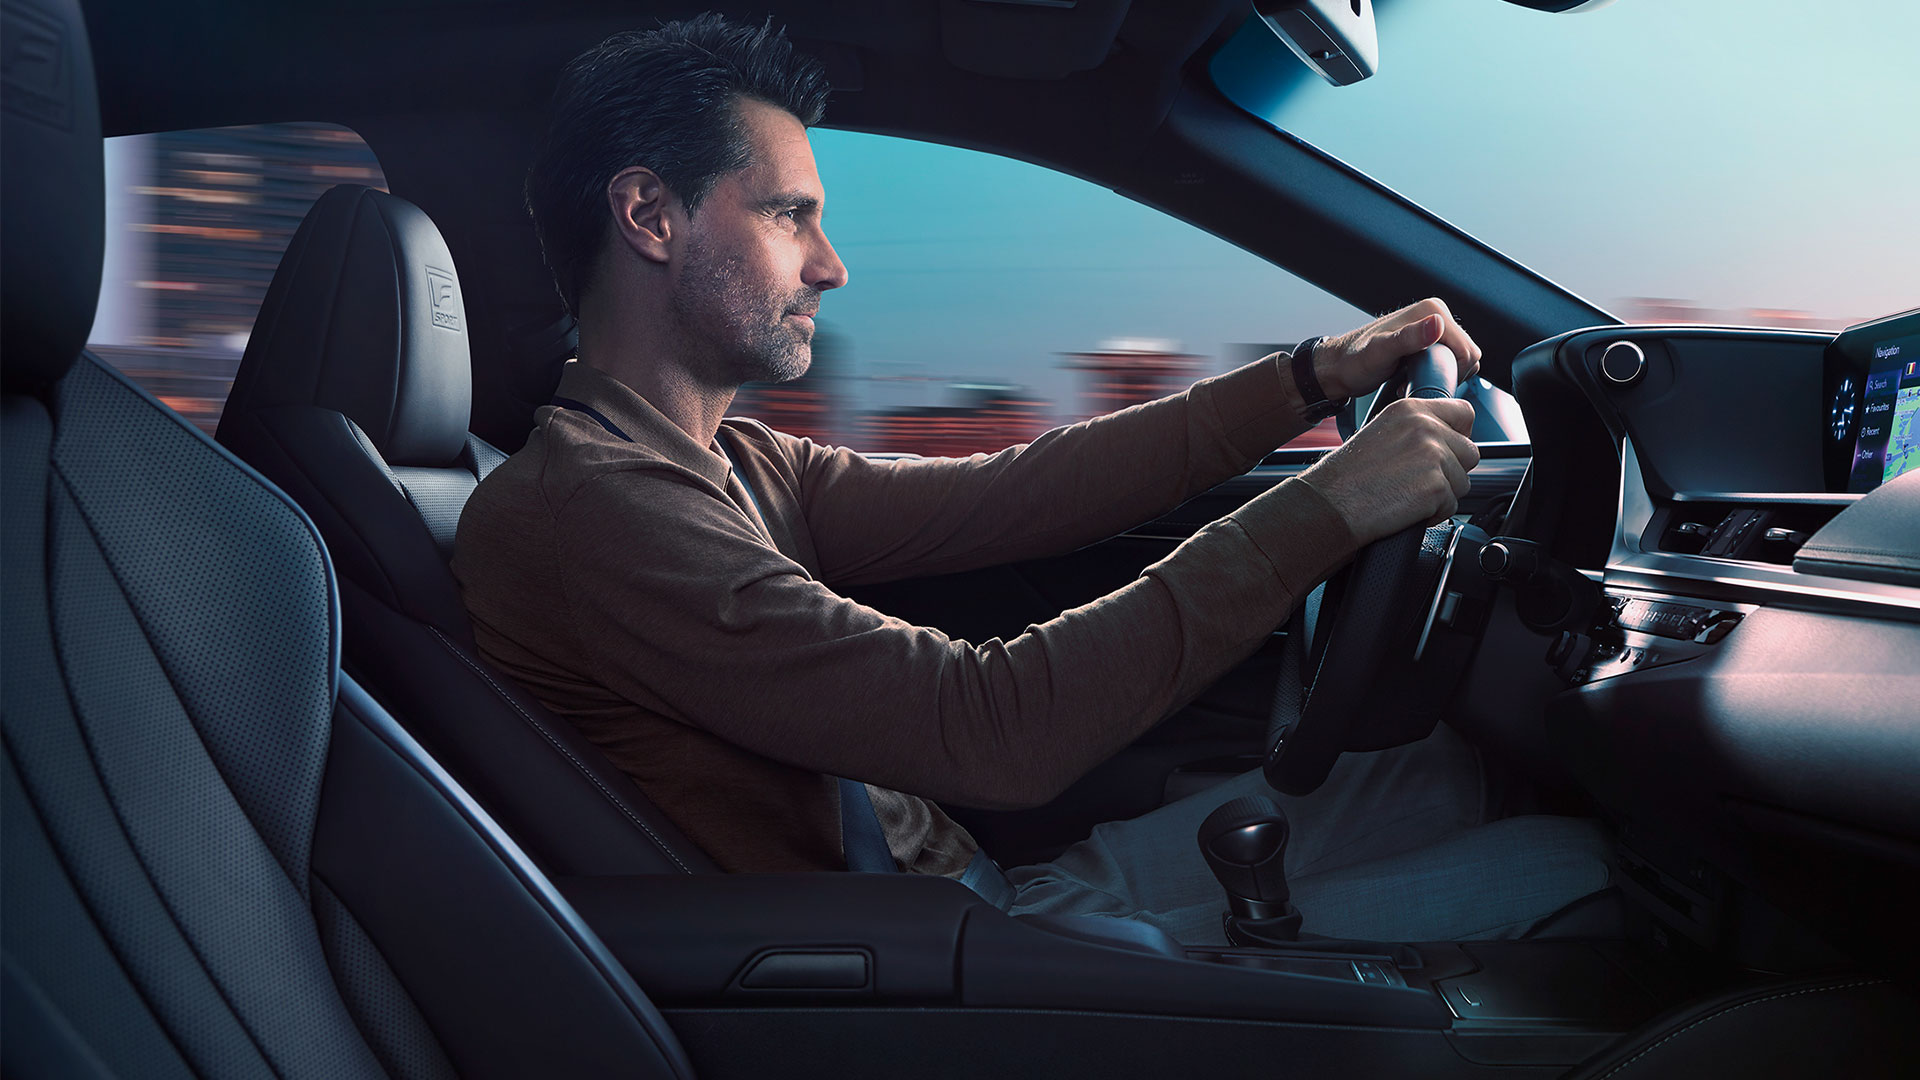 2019 lexus es driven by intuition next steps overview